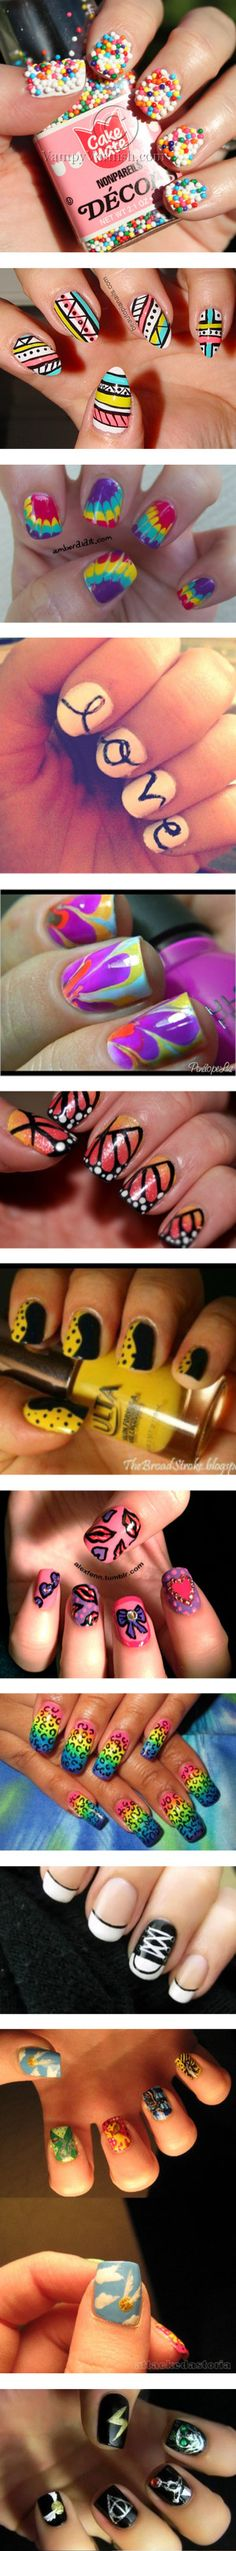 """""""Nails!"""" by hasya-weasley ❤ liked on Polyvore"""